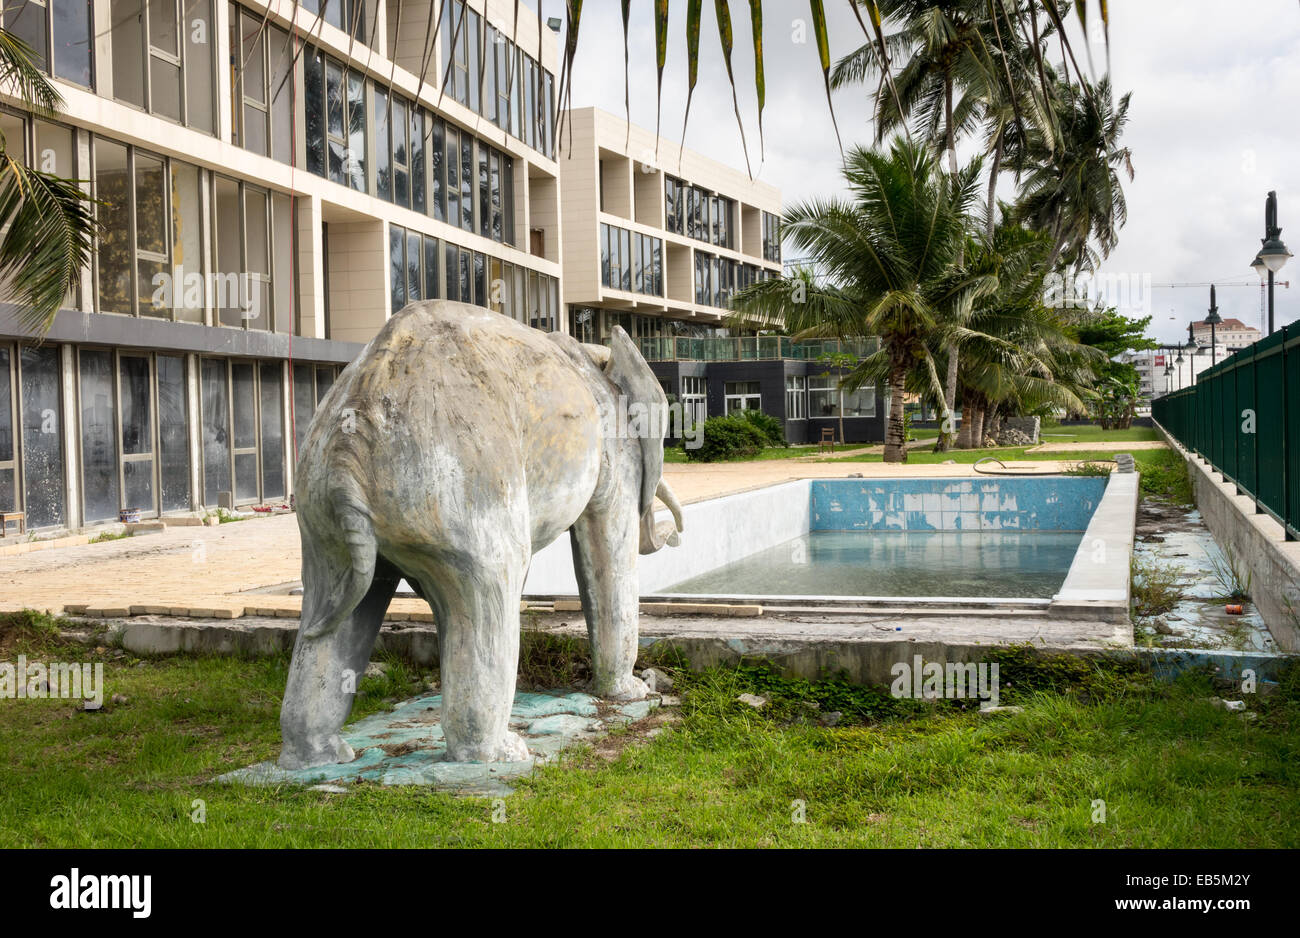 Elephant Statue And Unfinished Swimming Pool In Garden Of Apartment  Building In Bata, Equatorial Guinea